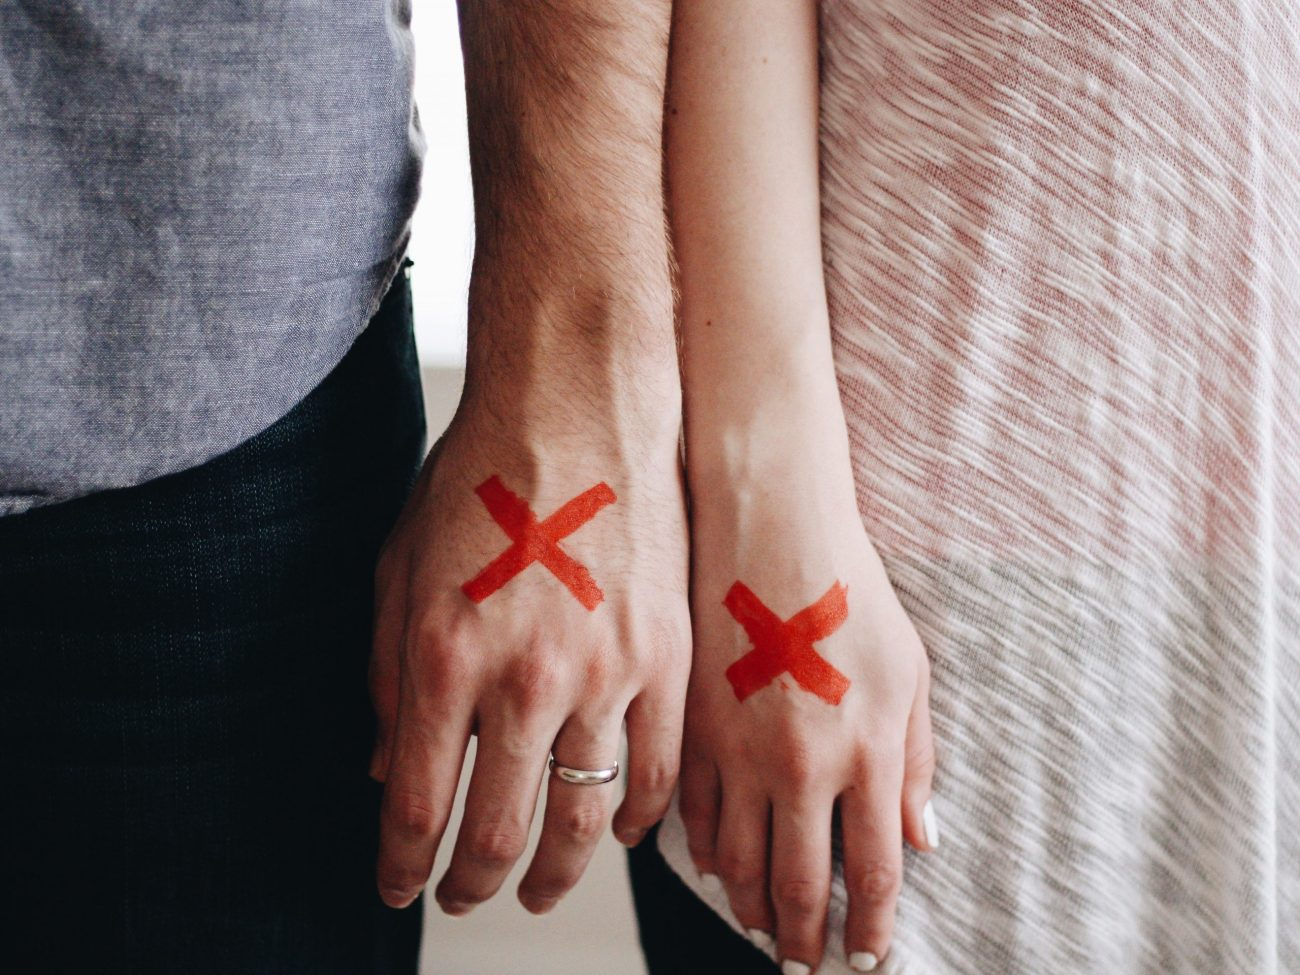 hands, couple, red x